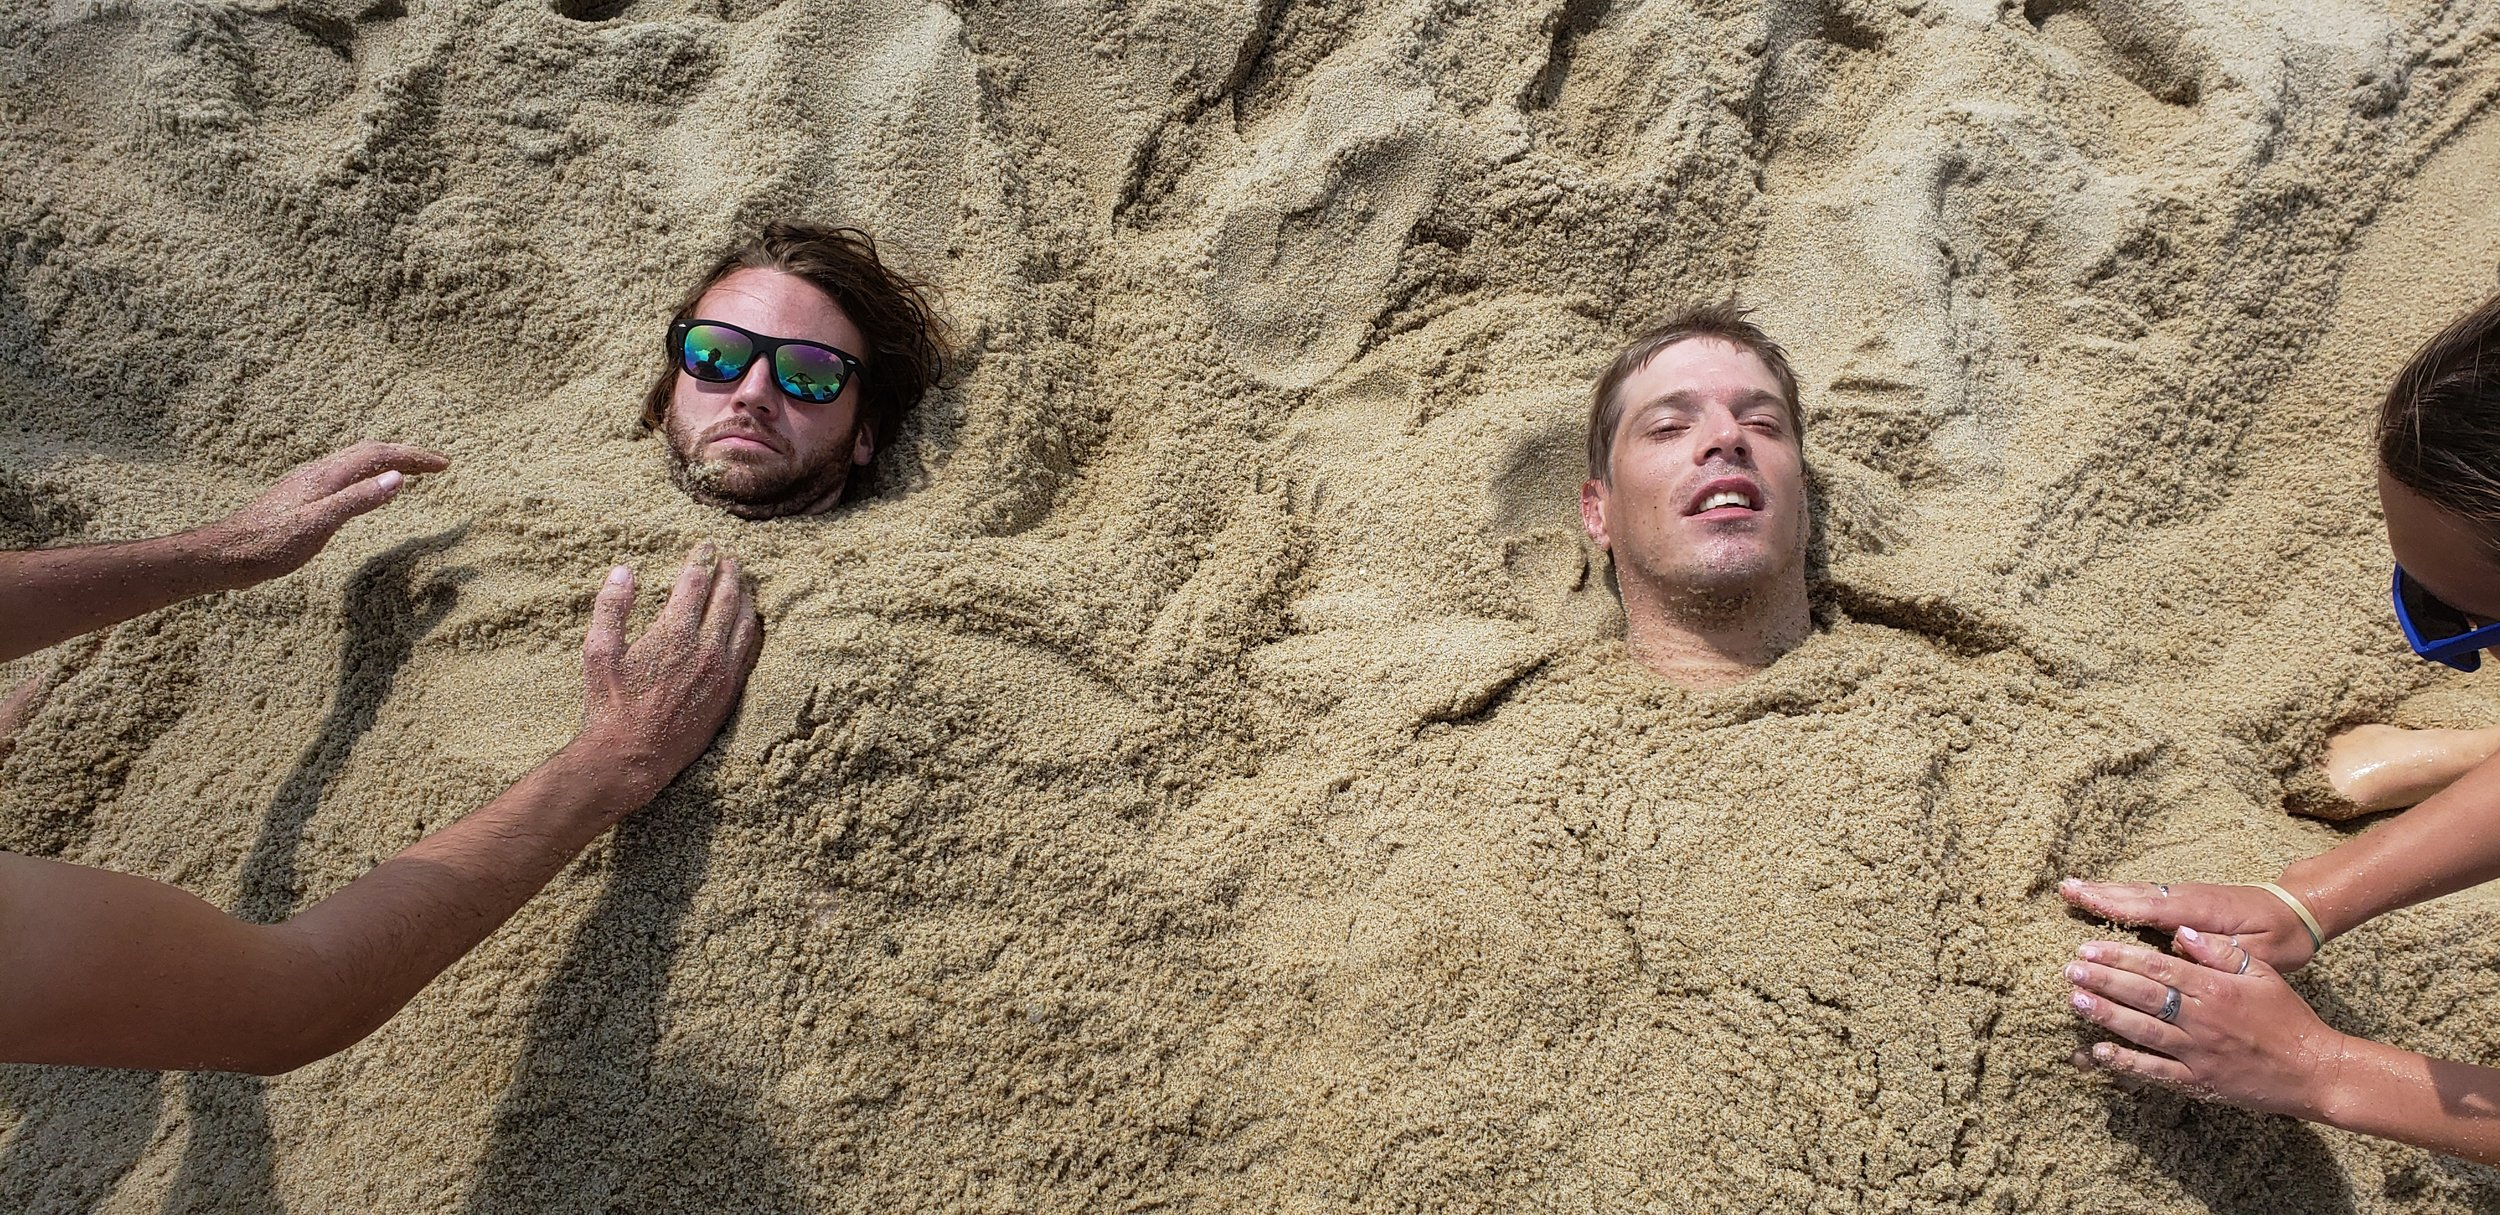 Thomas and Josh lost their bodies at the beach...